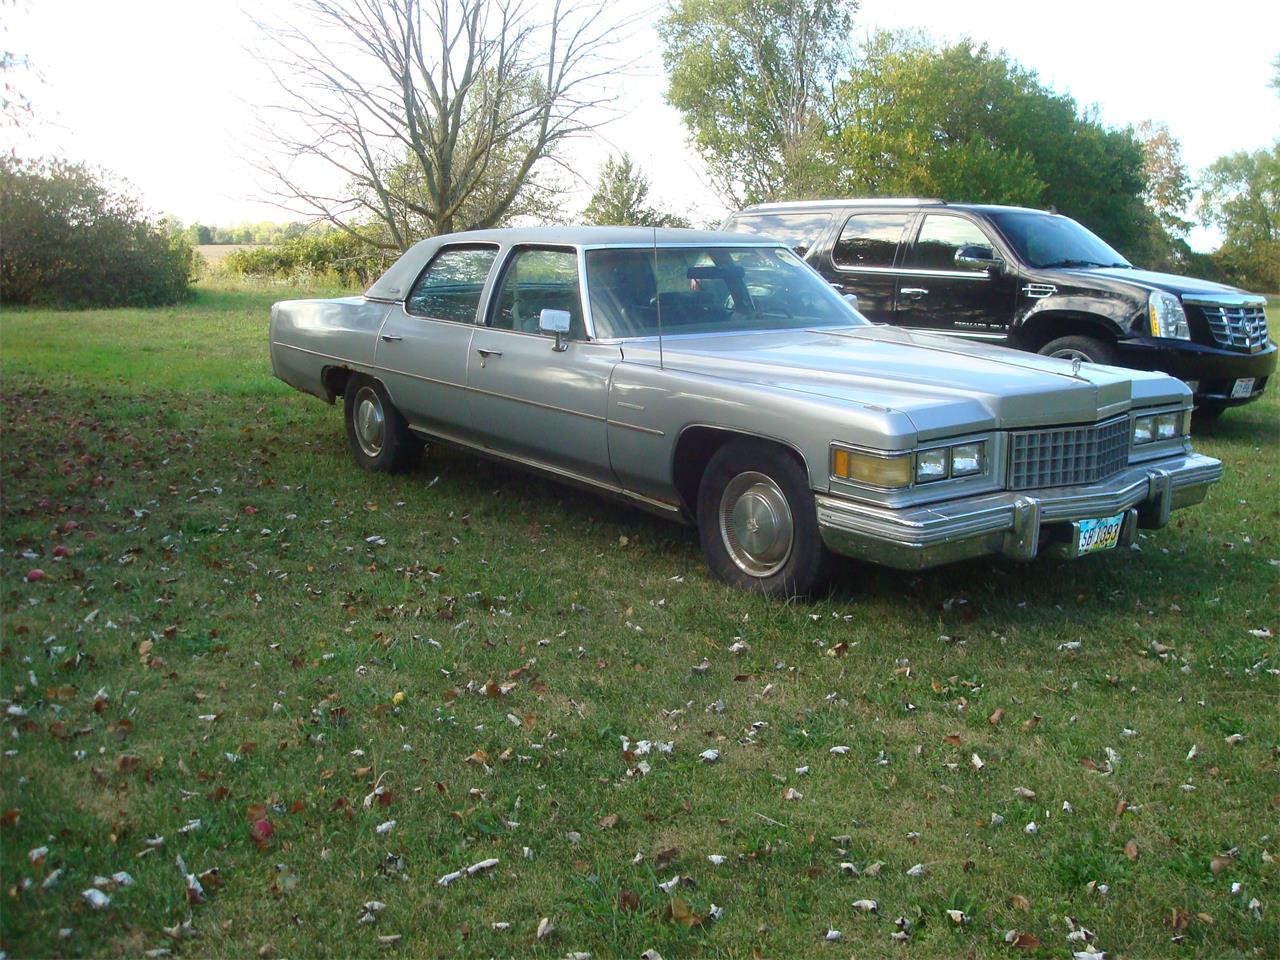 1976 Cadillac Fleetwood Brougham d'Elegance for sale in New London, OH – photo 3